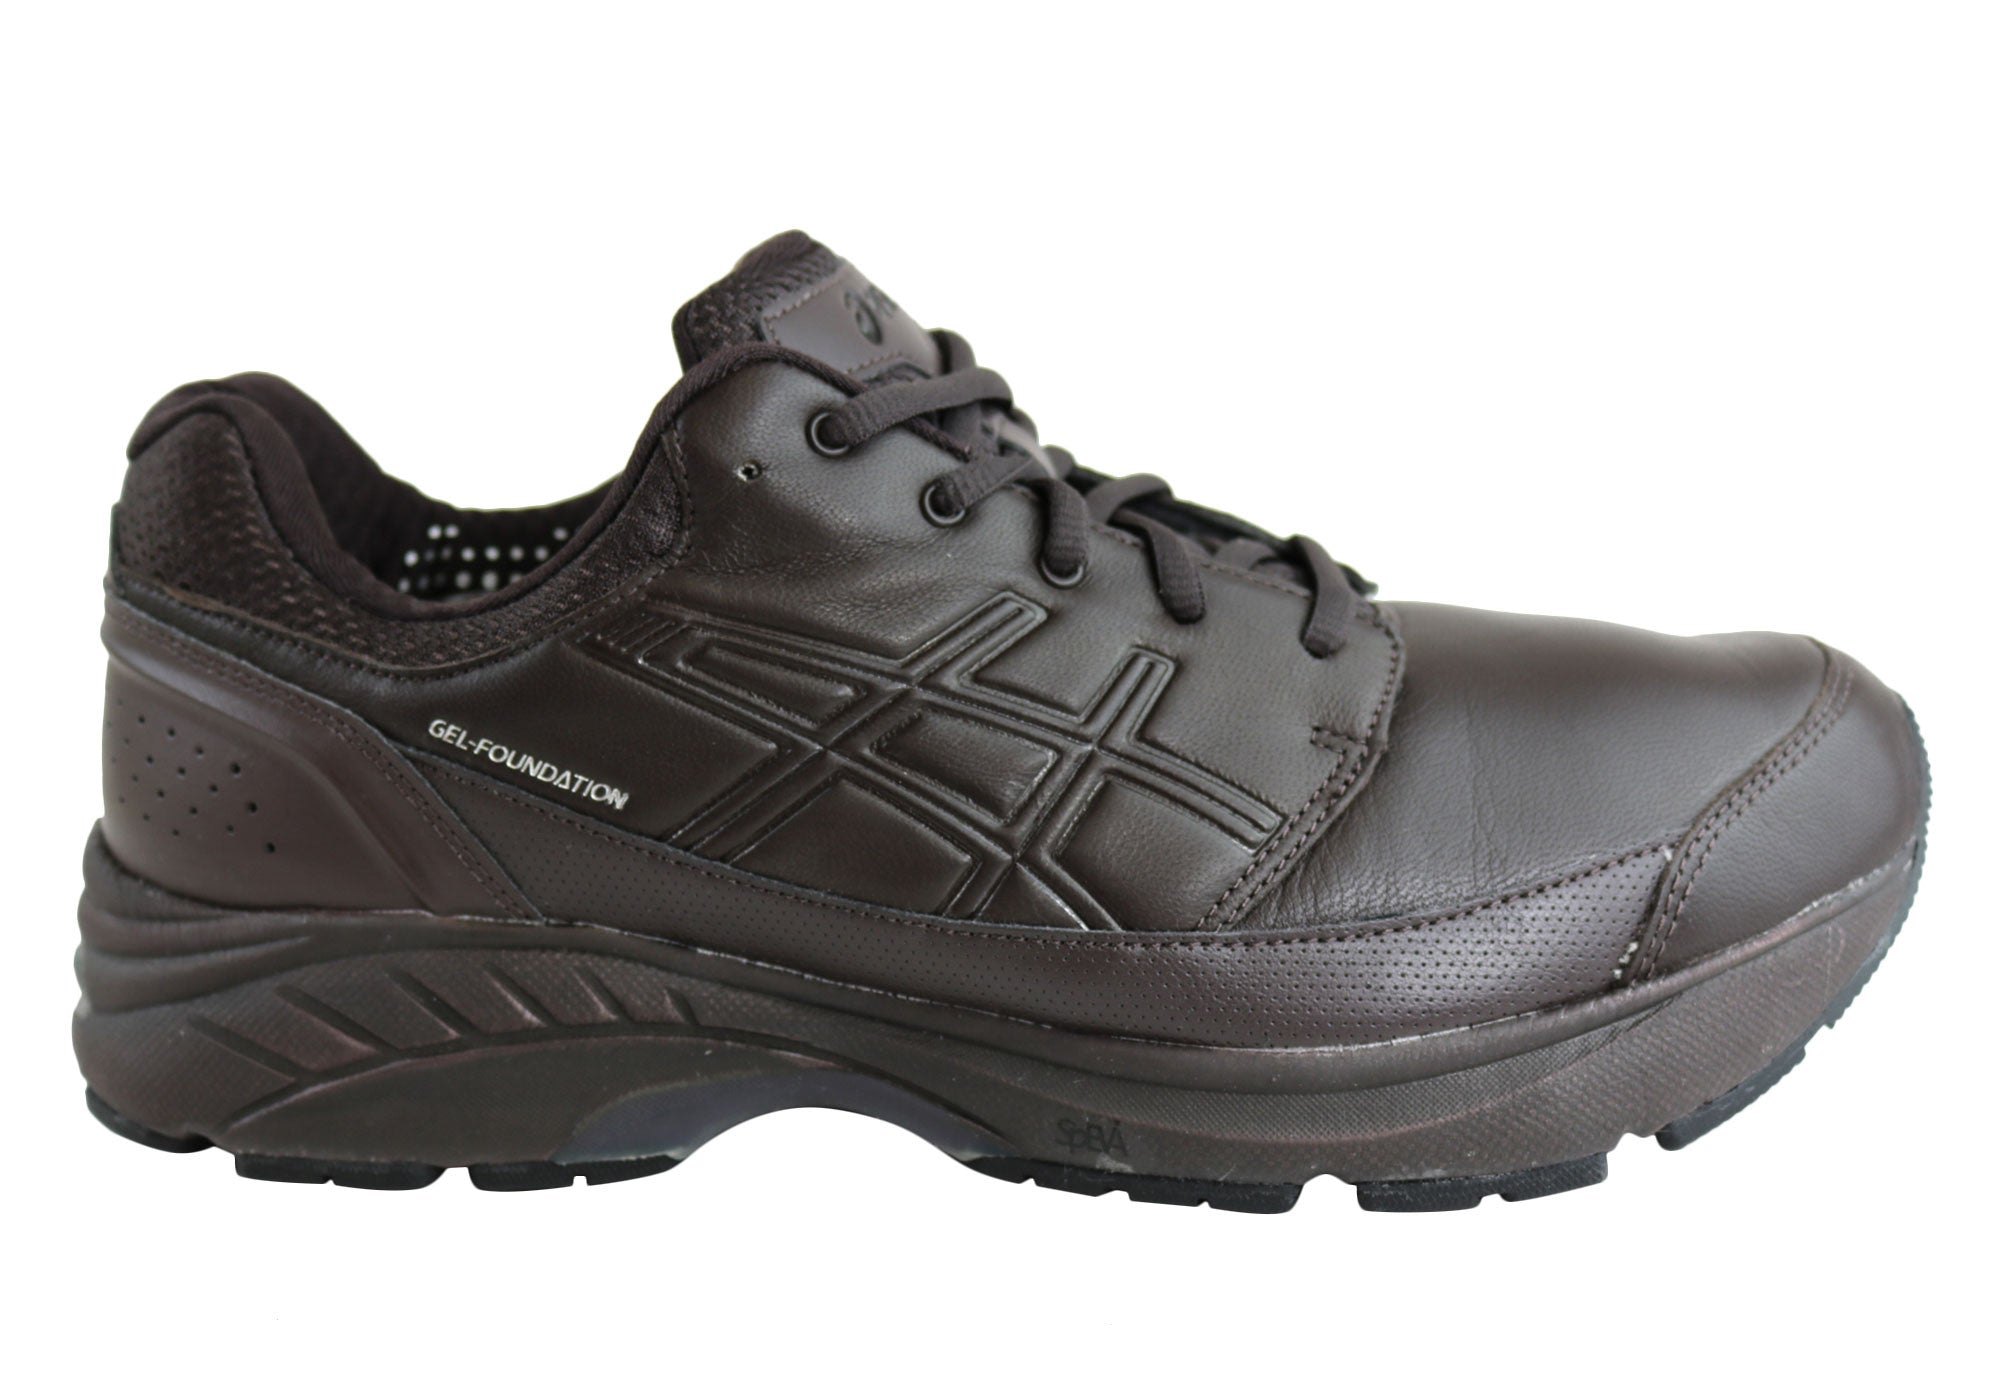 63a2ed0b78 Asics Mens Gel-Foundation Workplace Leather Shoes 4E Extra Wide ...